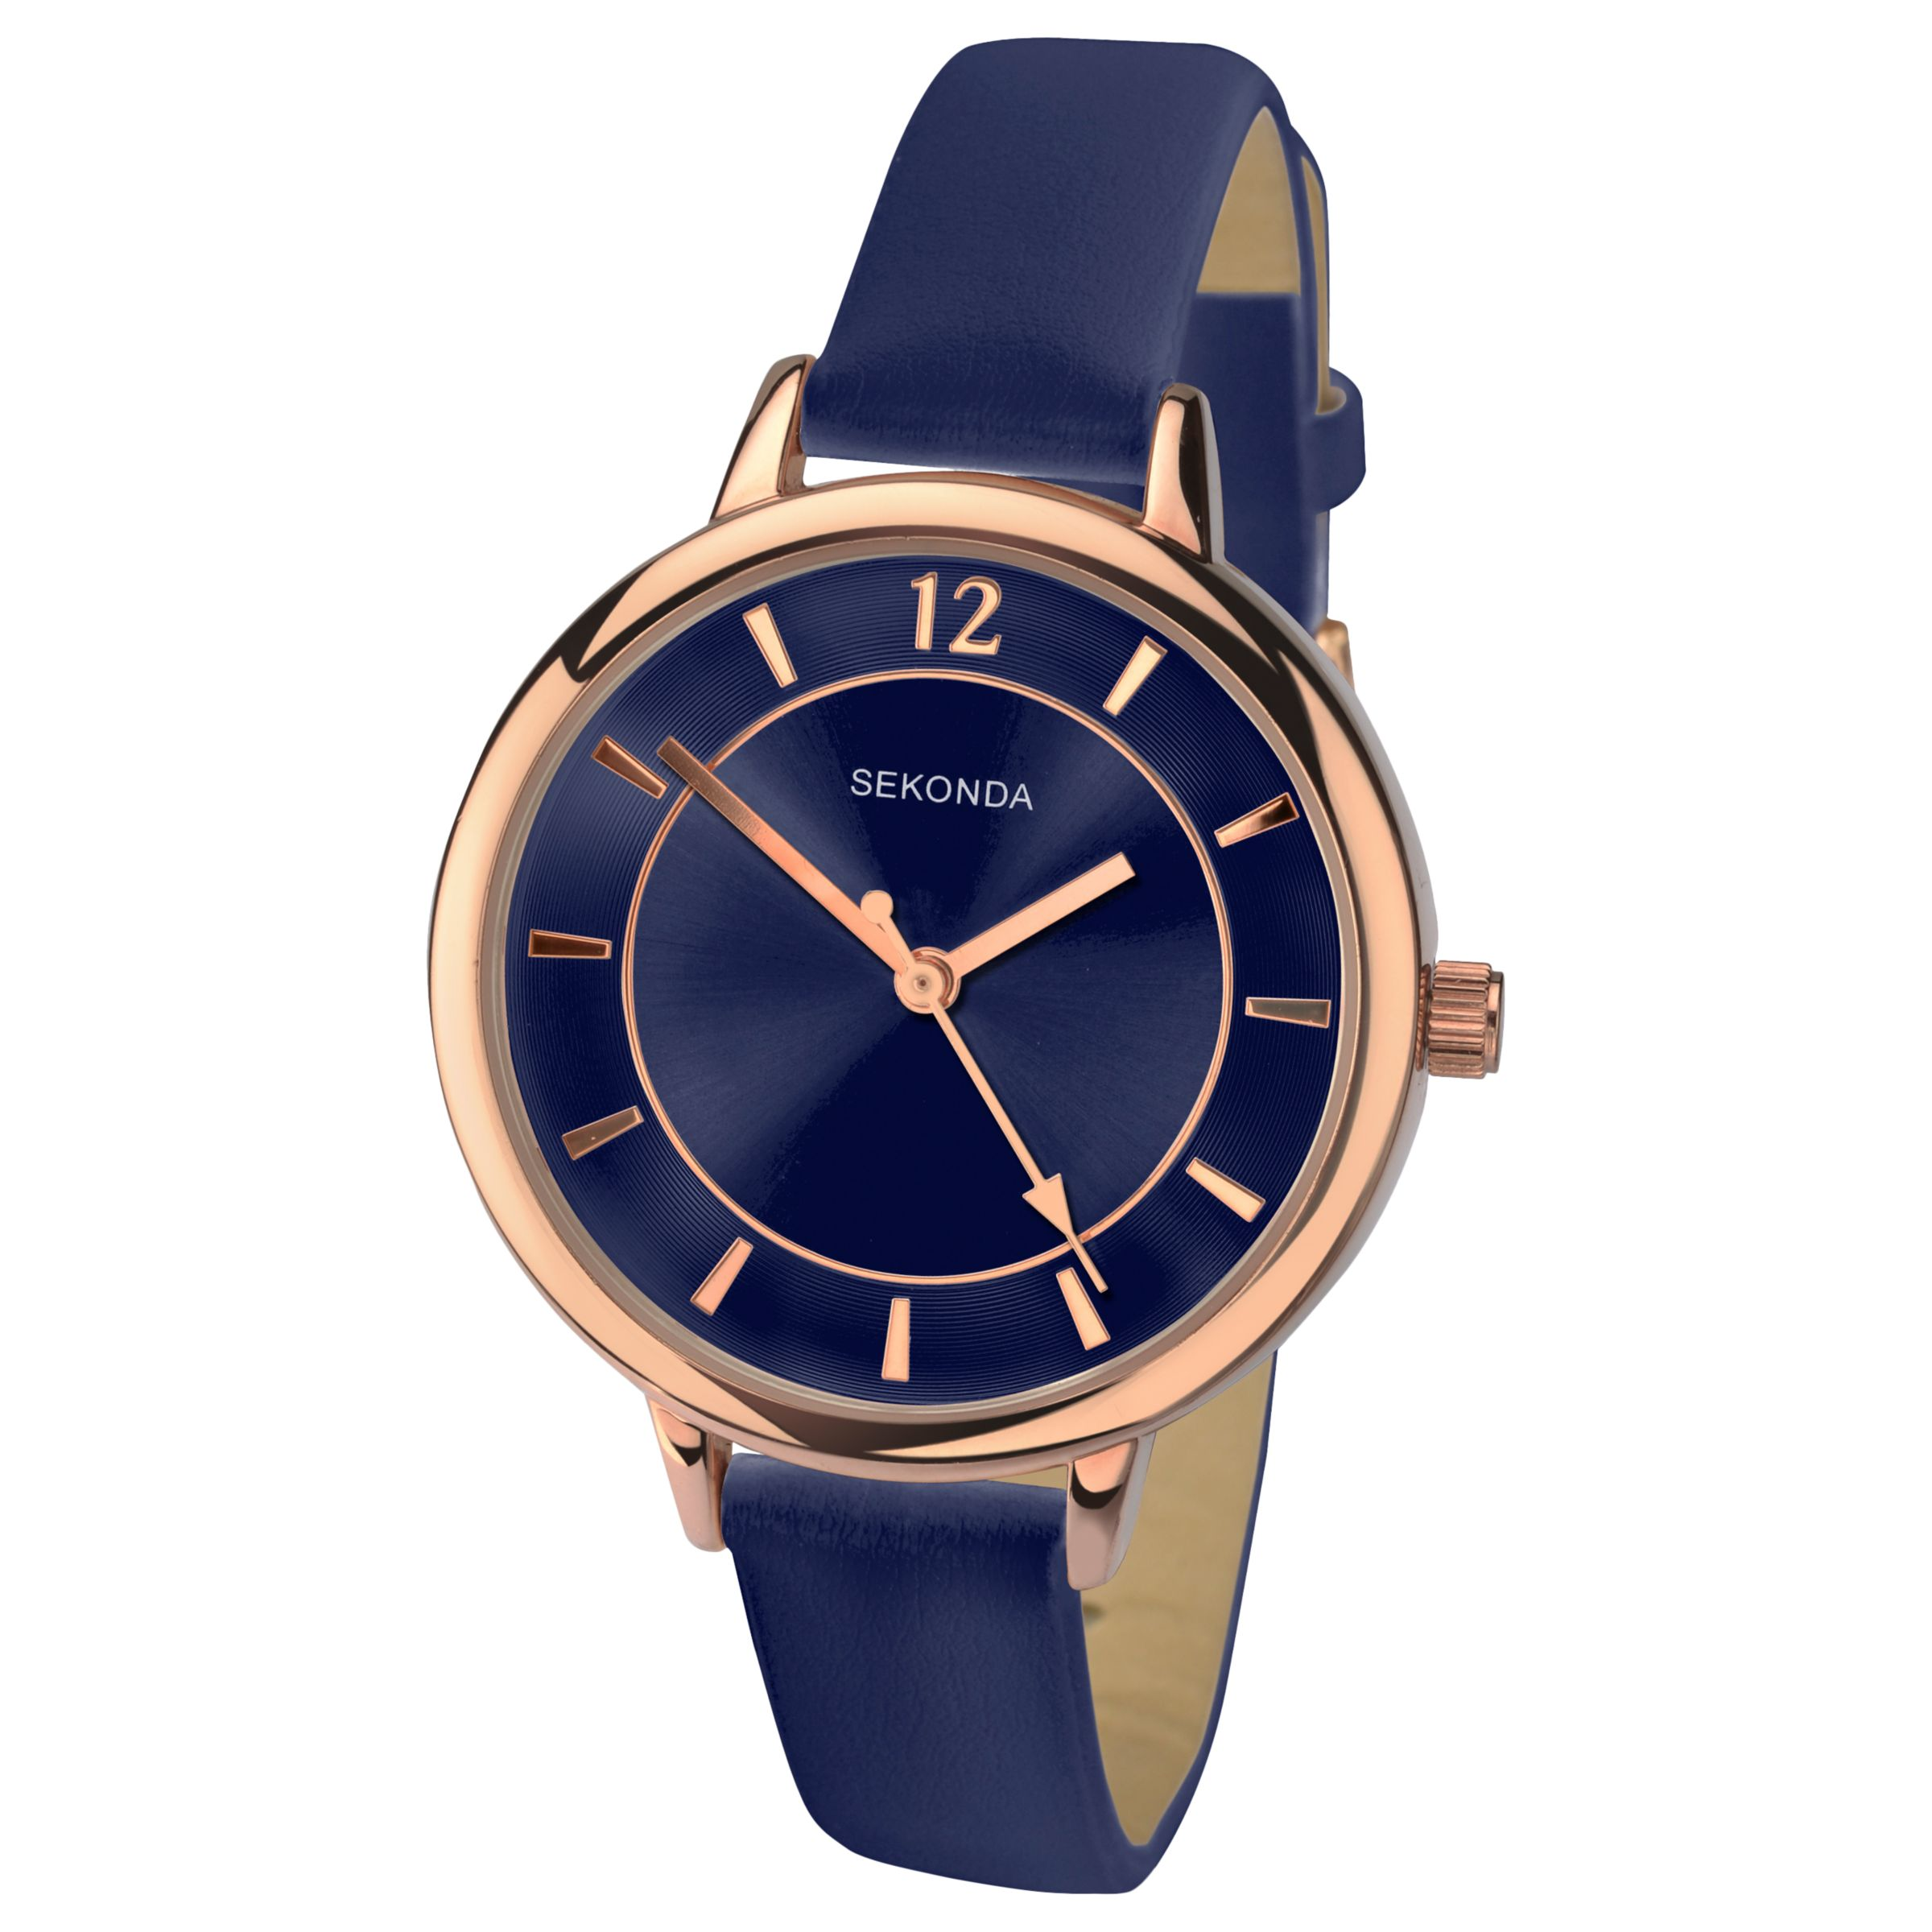 Sekonda Sekonda 2136.27 Women's Leather Look Strap Watch, Navy